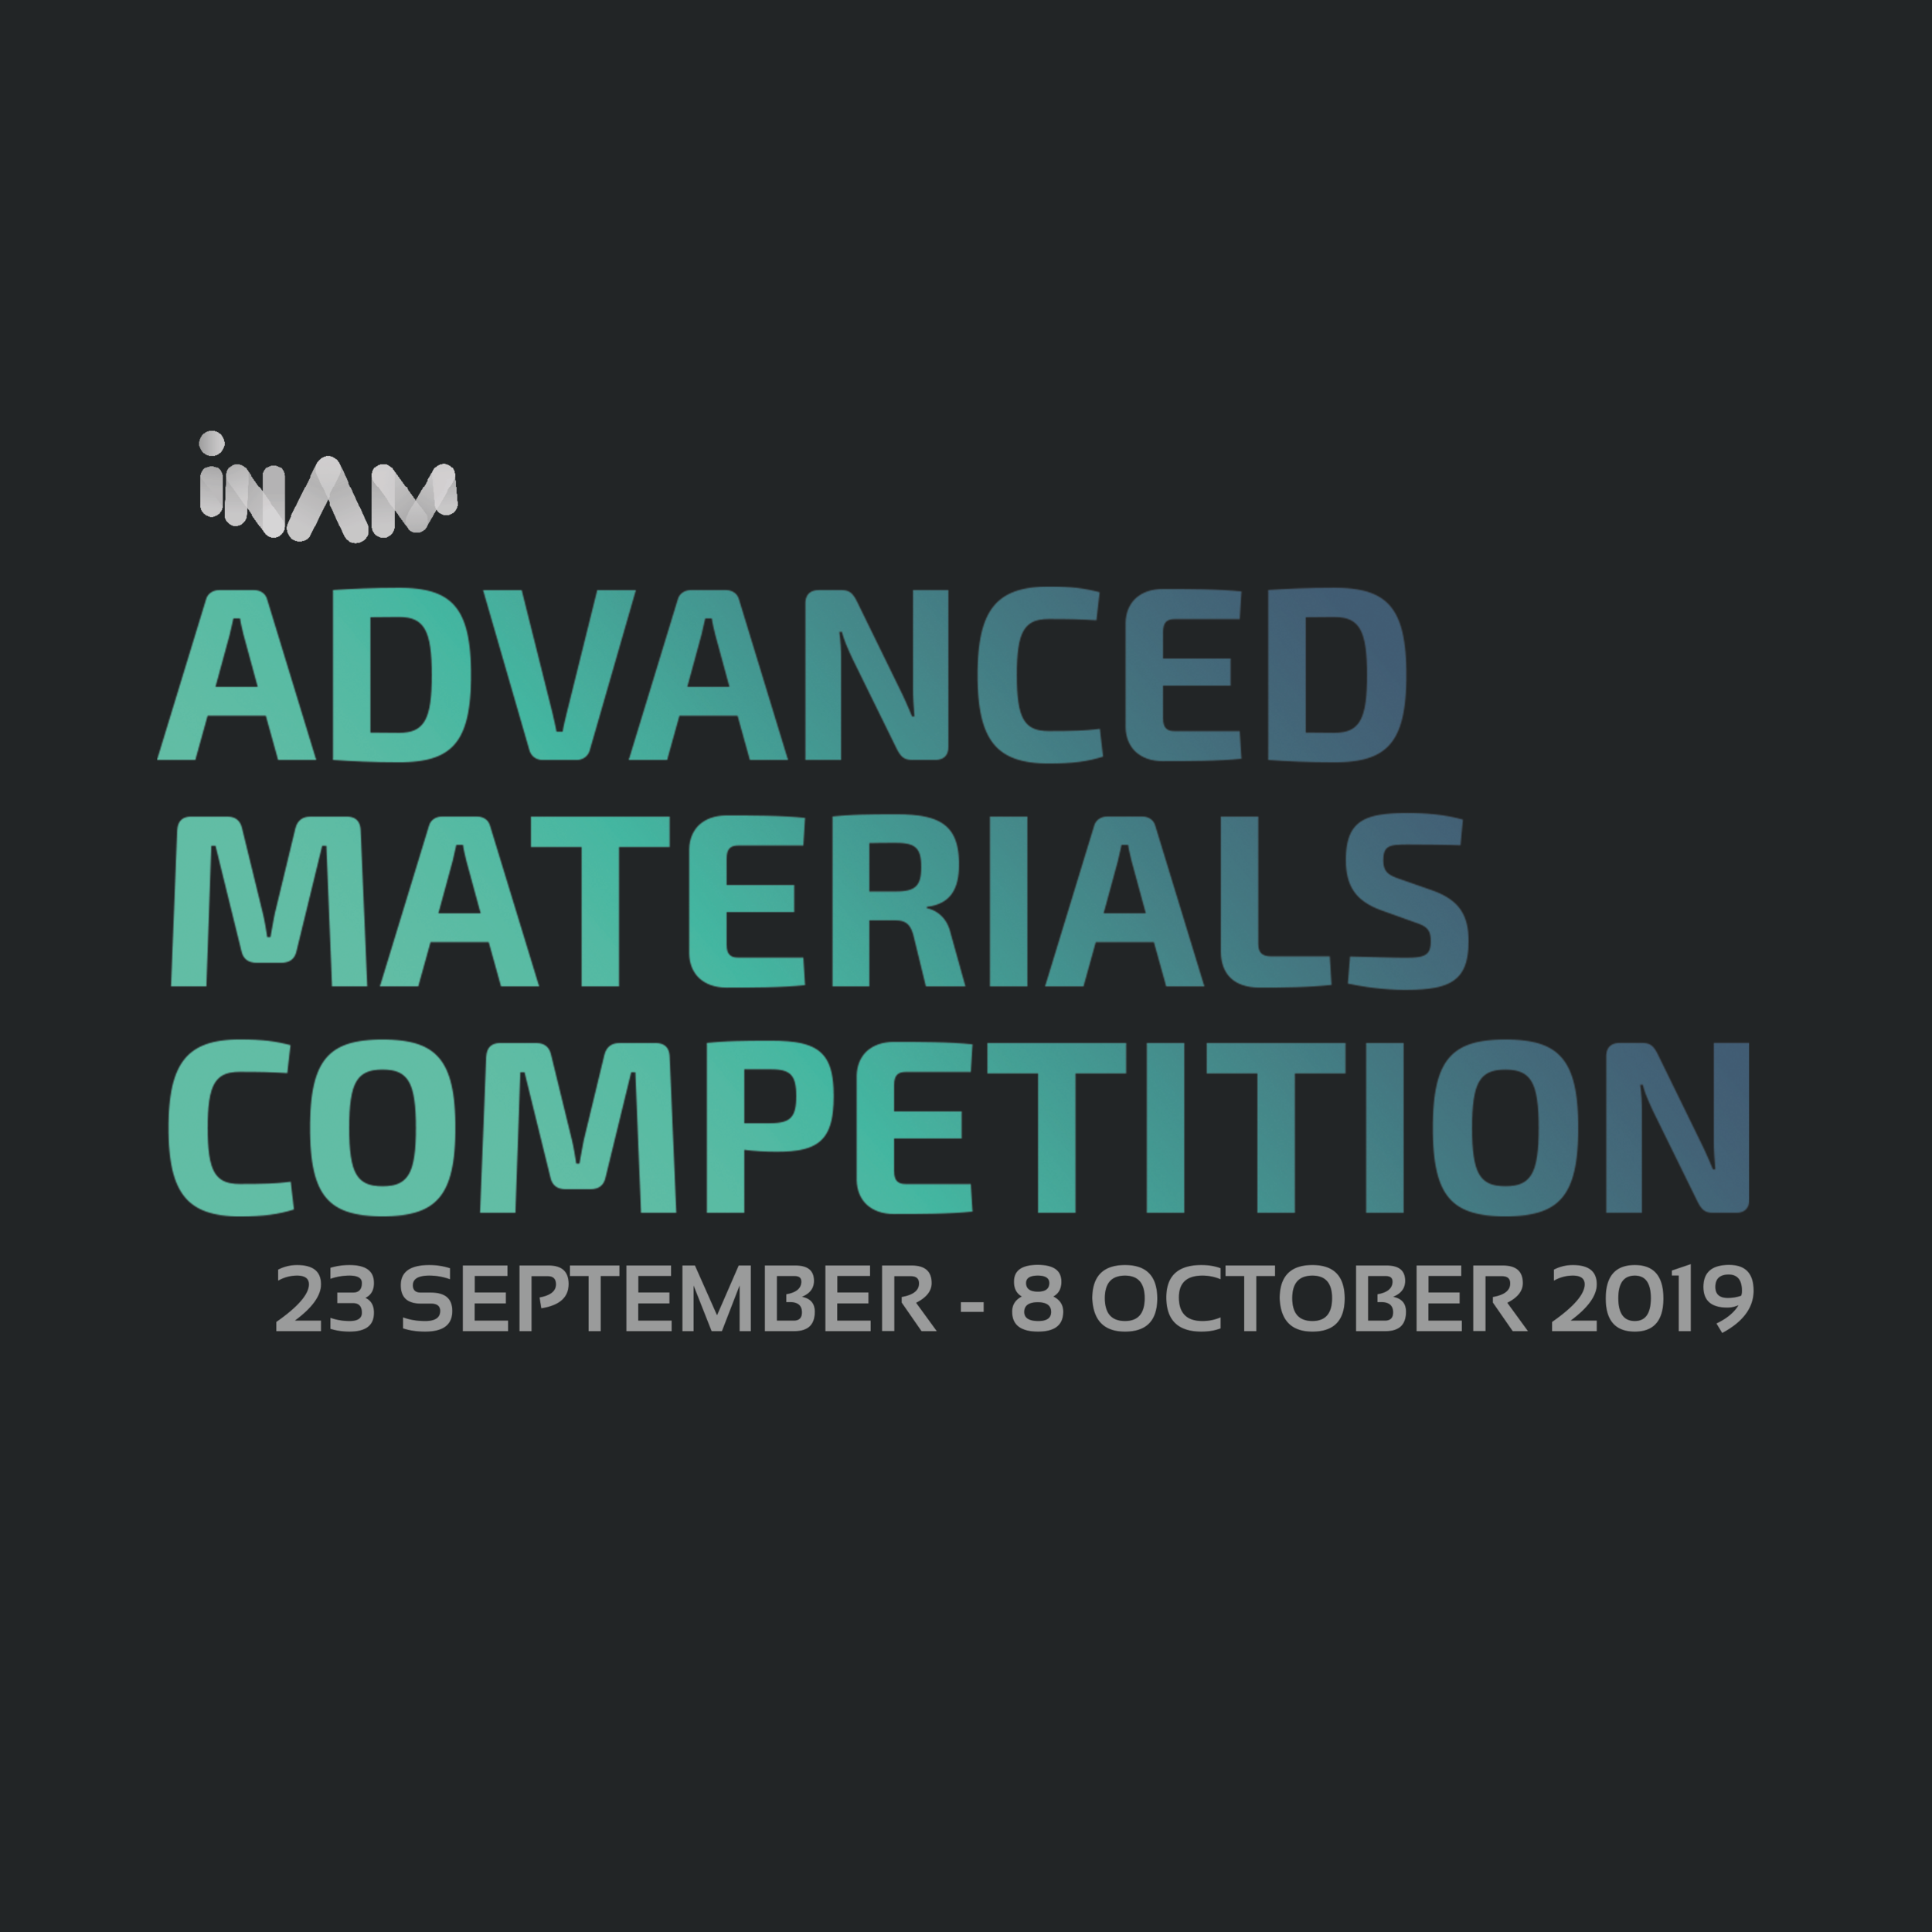 AdMaCom2019 - AdMaCom is a fast-paced accelerator program that will bring together the brightest minds in the Materials sector and will allow you access to a broad infrastructure in Berlin to test and improve your technology.